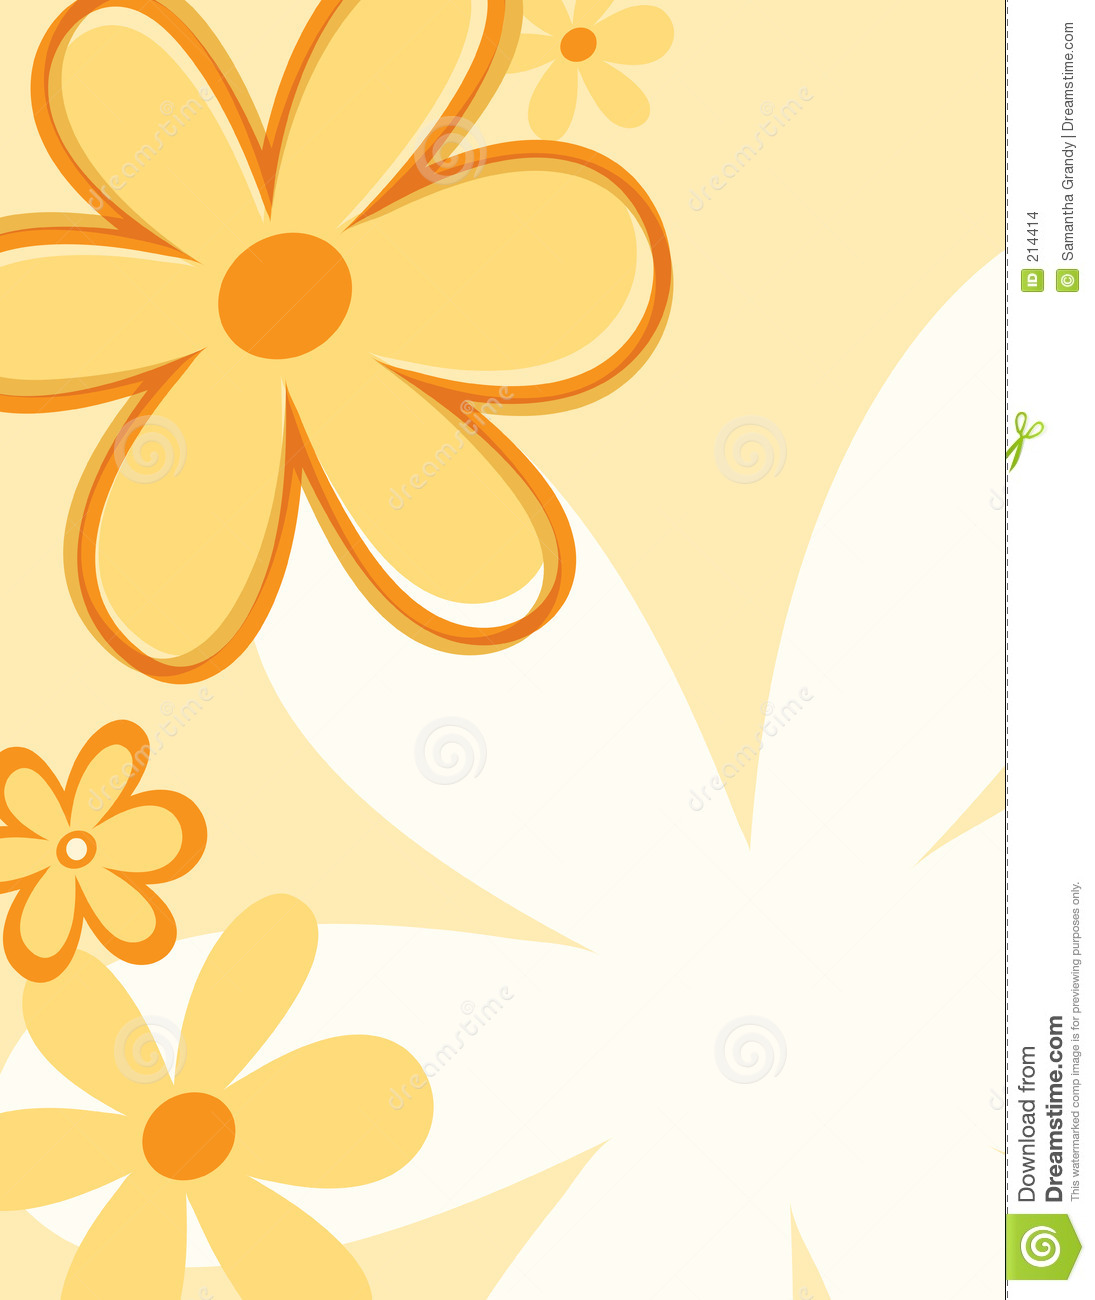 clipart flower backgrounds - photo #21